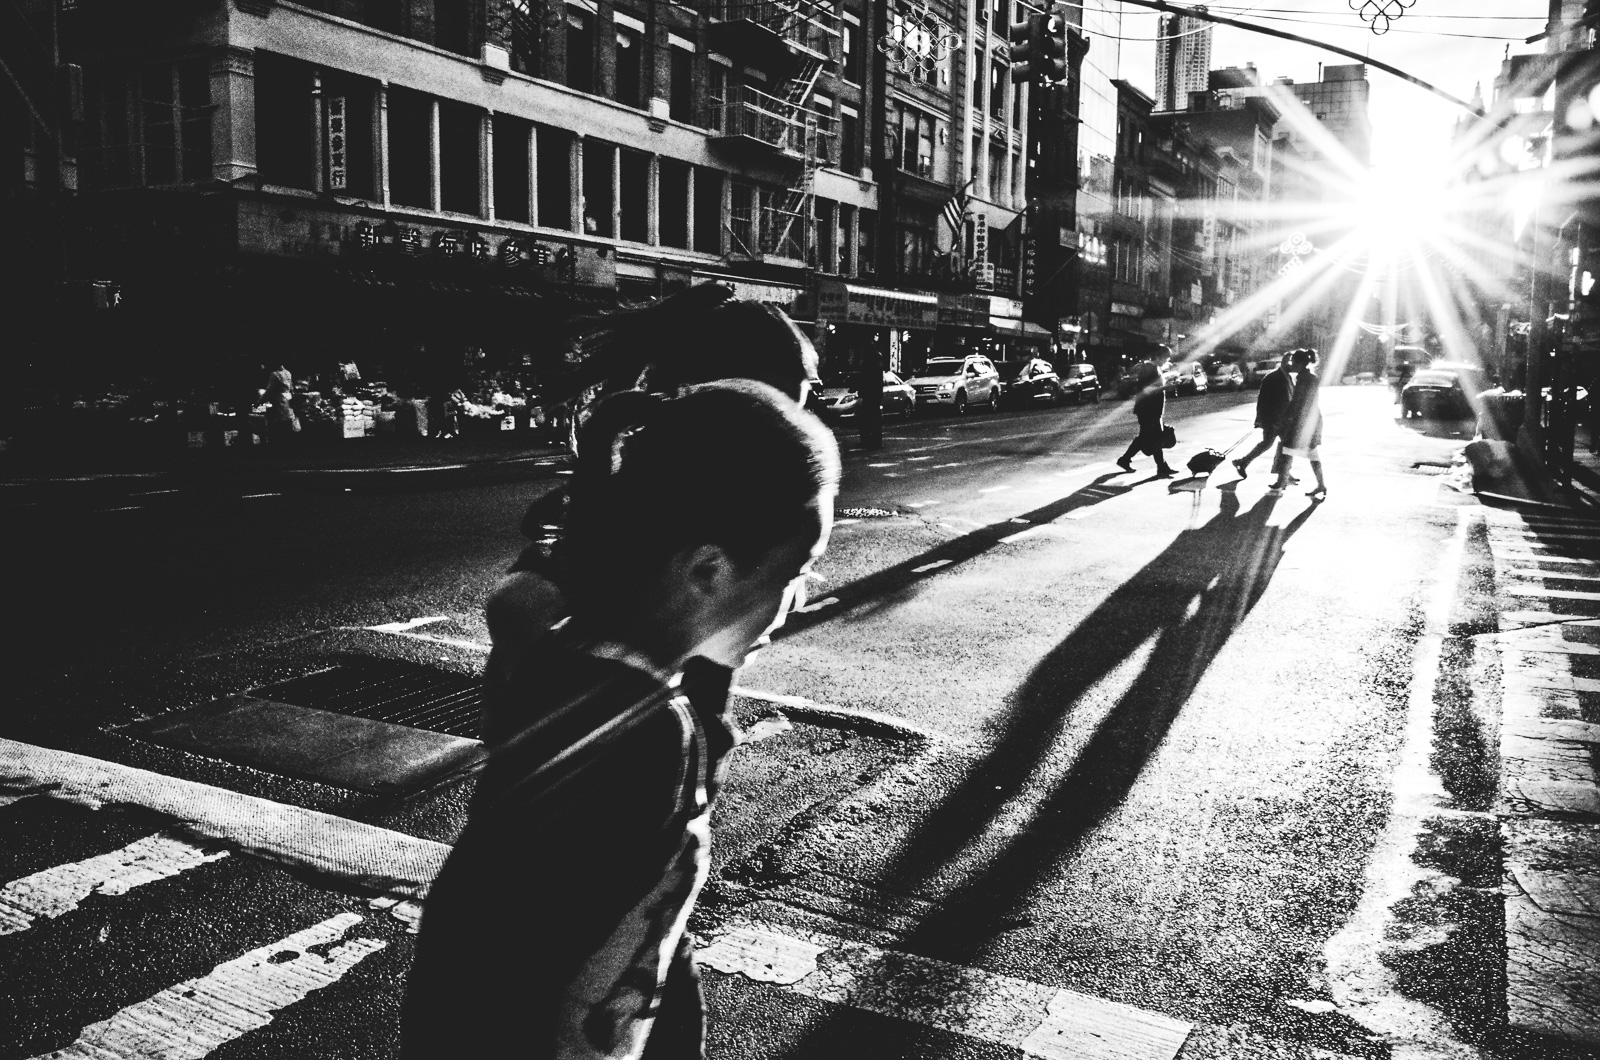 People cast long shadows along East Broadway Street in New York City